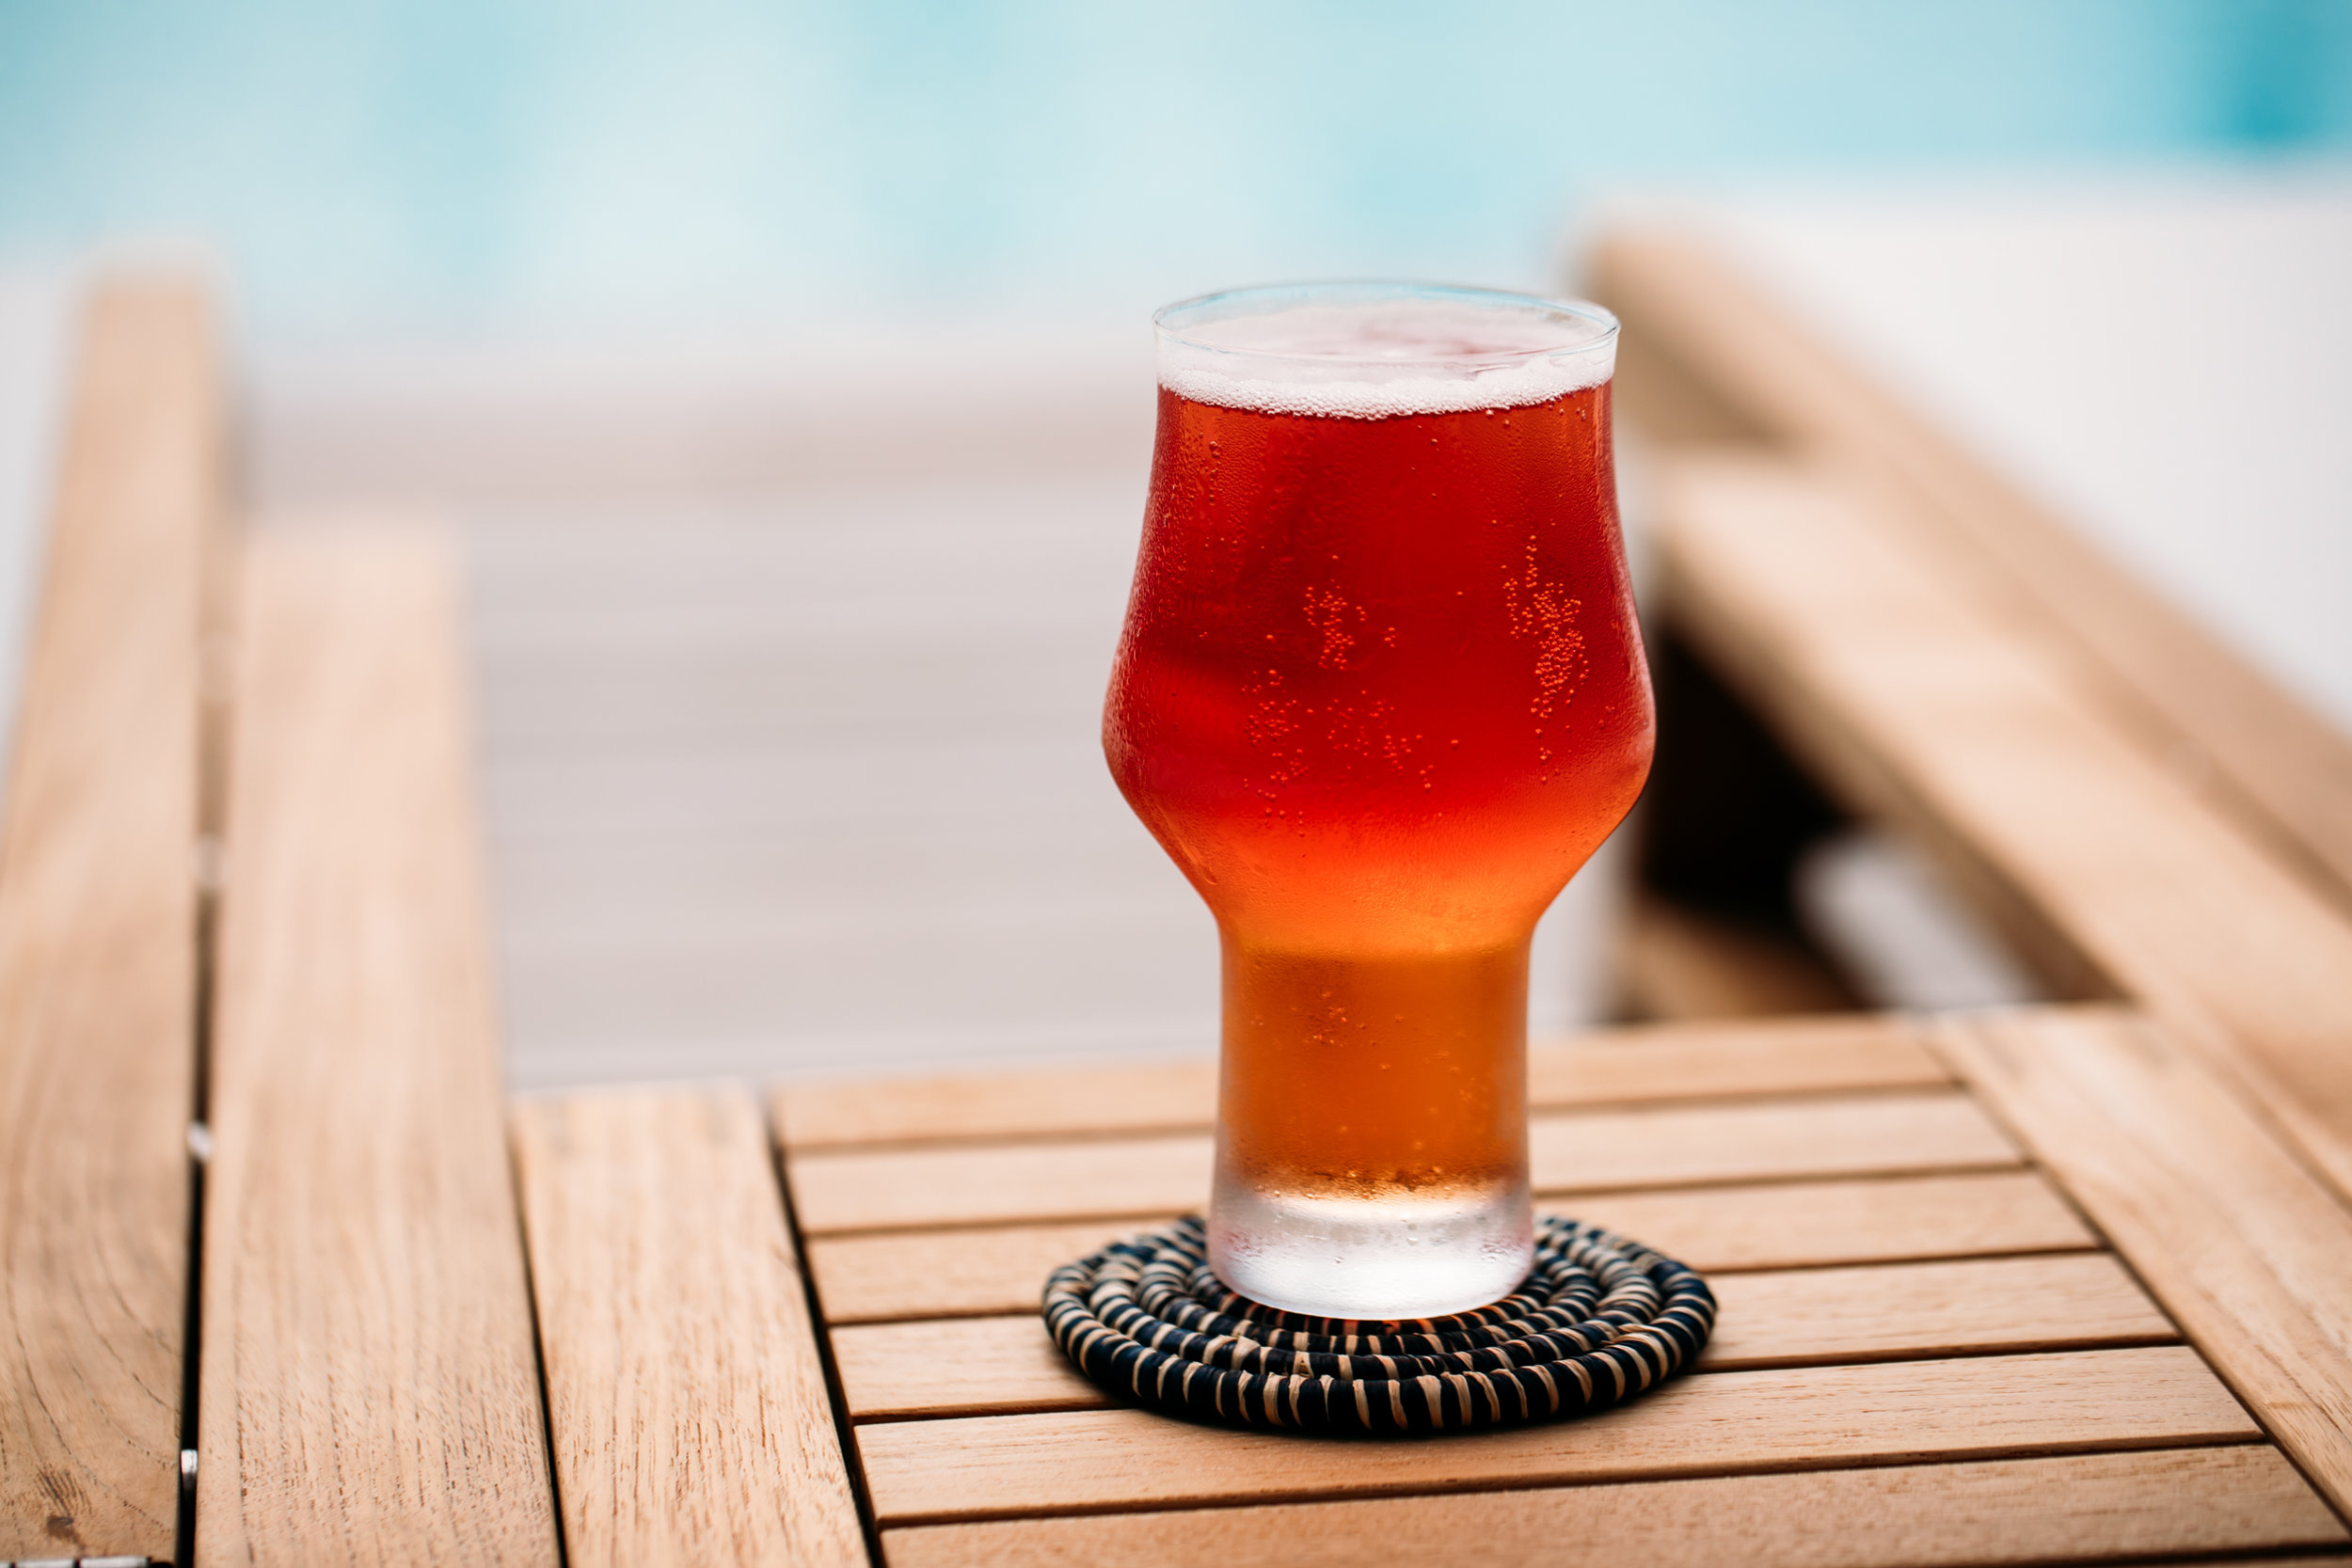 Beer in fancy glass with coaster